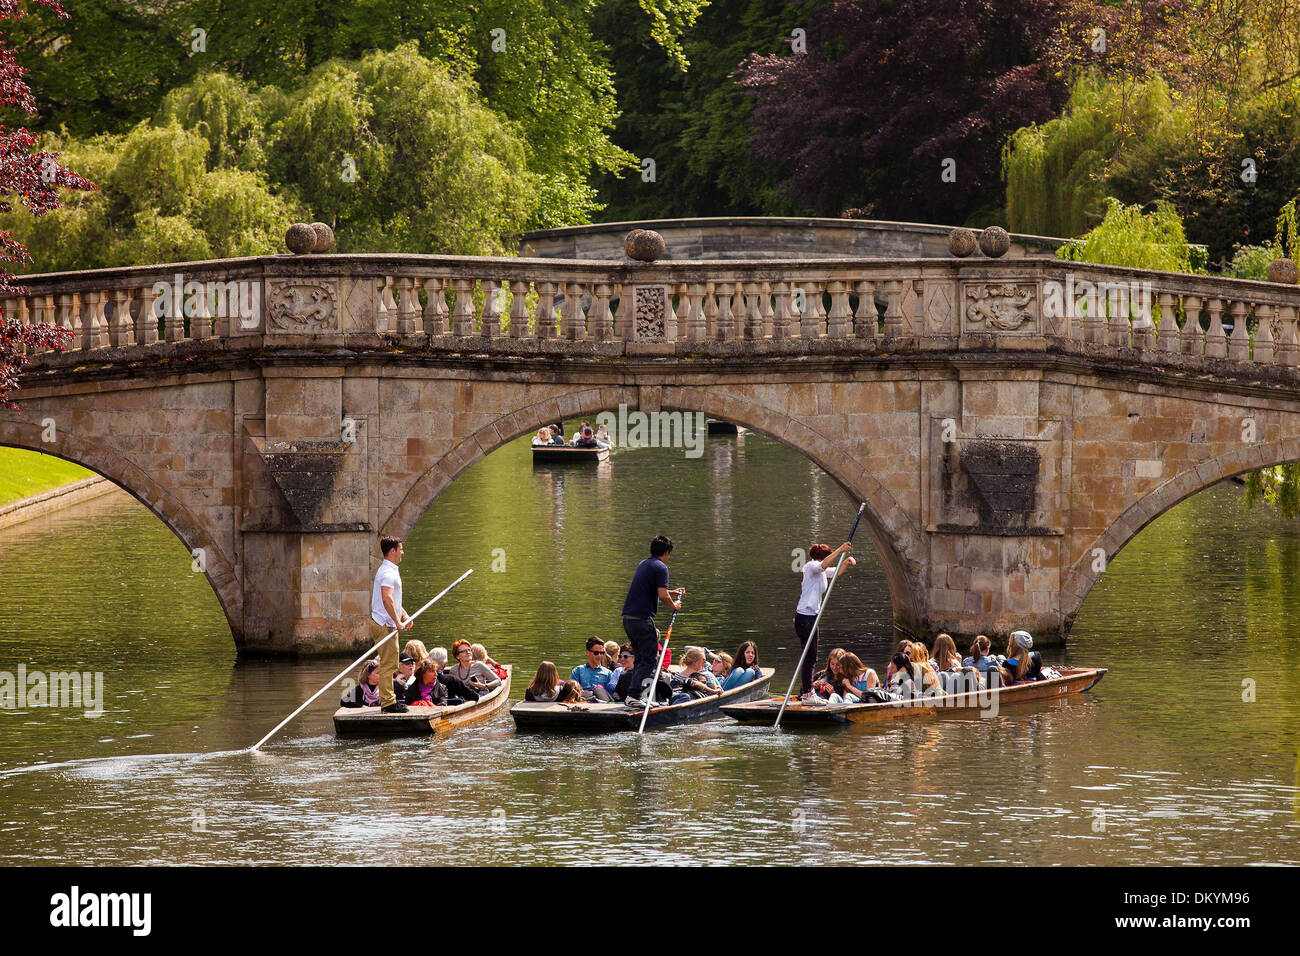 Groups of people punt down the River Cam in Cambridge today, Thursday in the spring sunshine, May 16 2013. - Stock Image